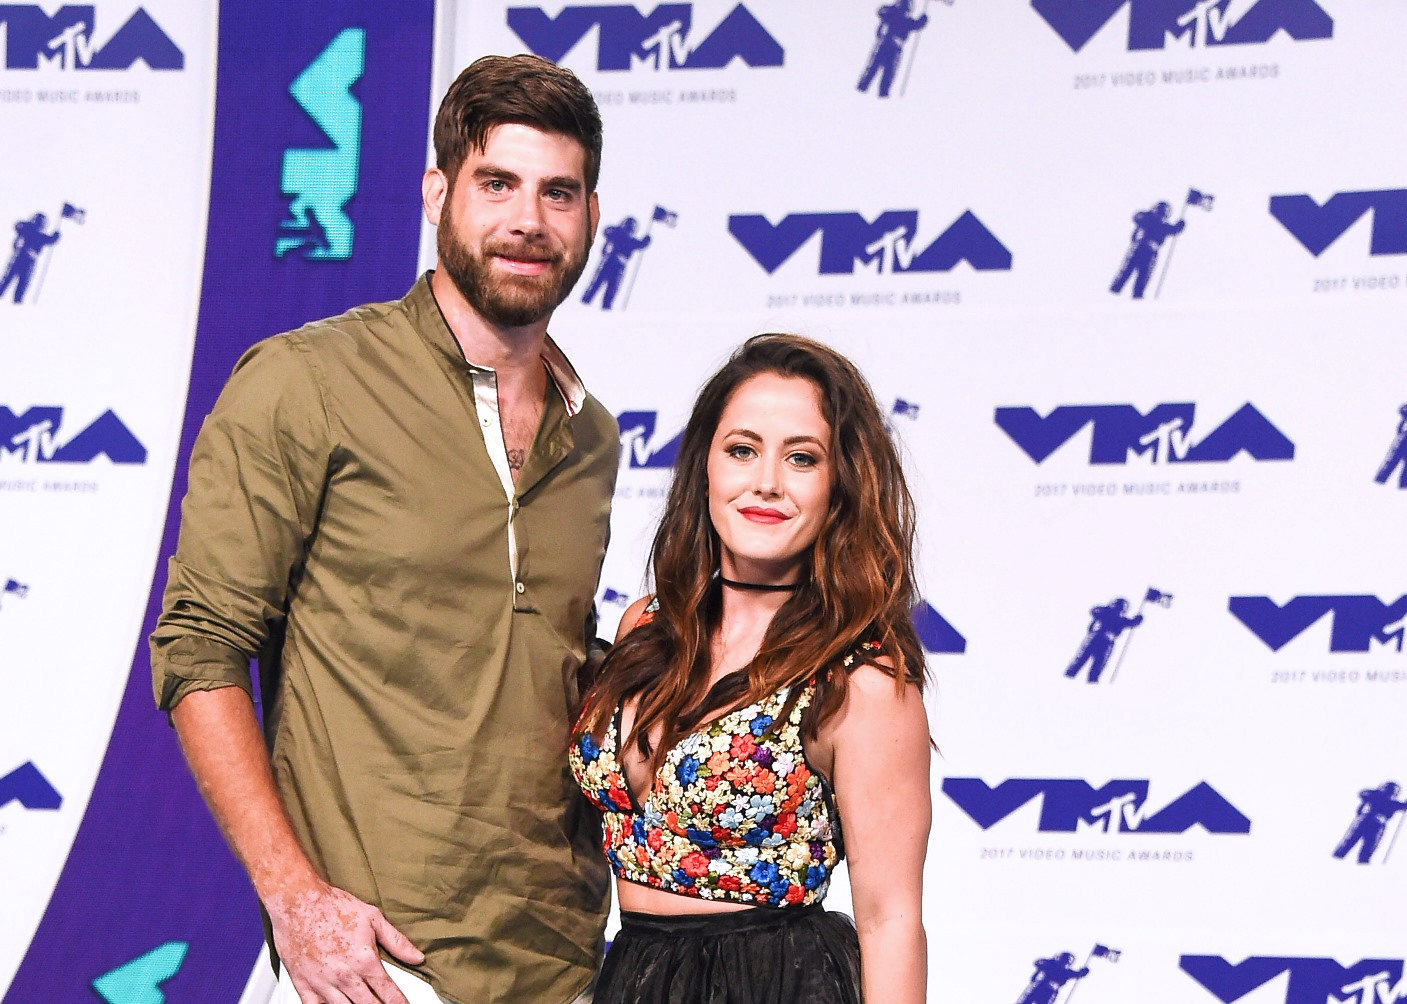 jenelle-evans-and-david-eason-receive-backlash-for-animal-abuse-after-posting-video-of-the-man-dragging-a-pig